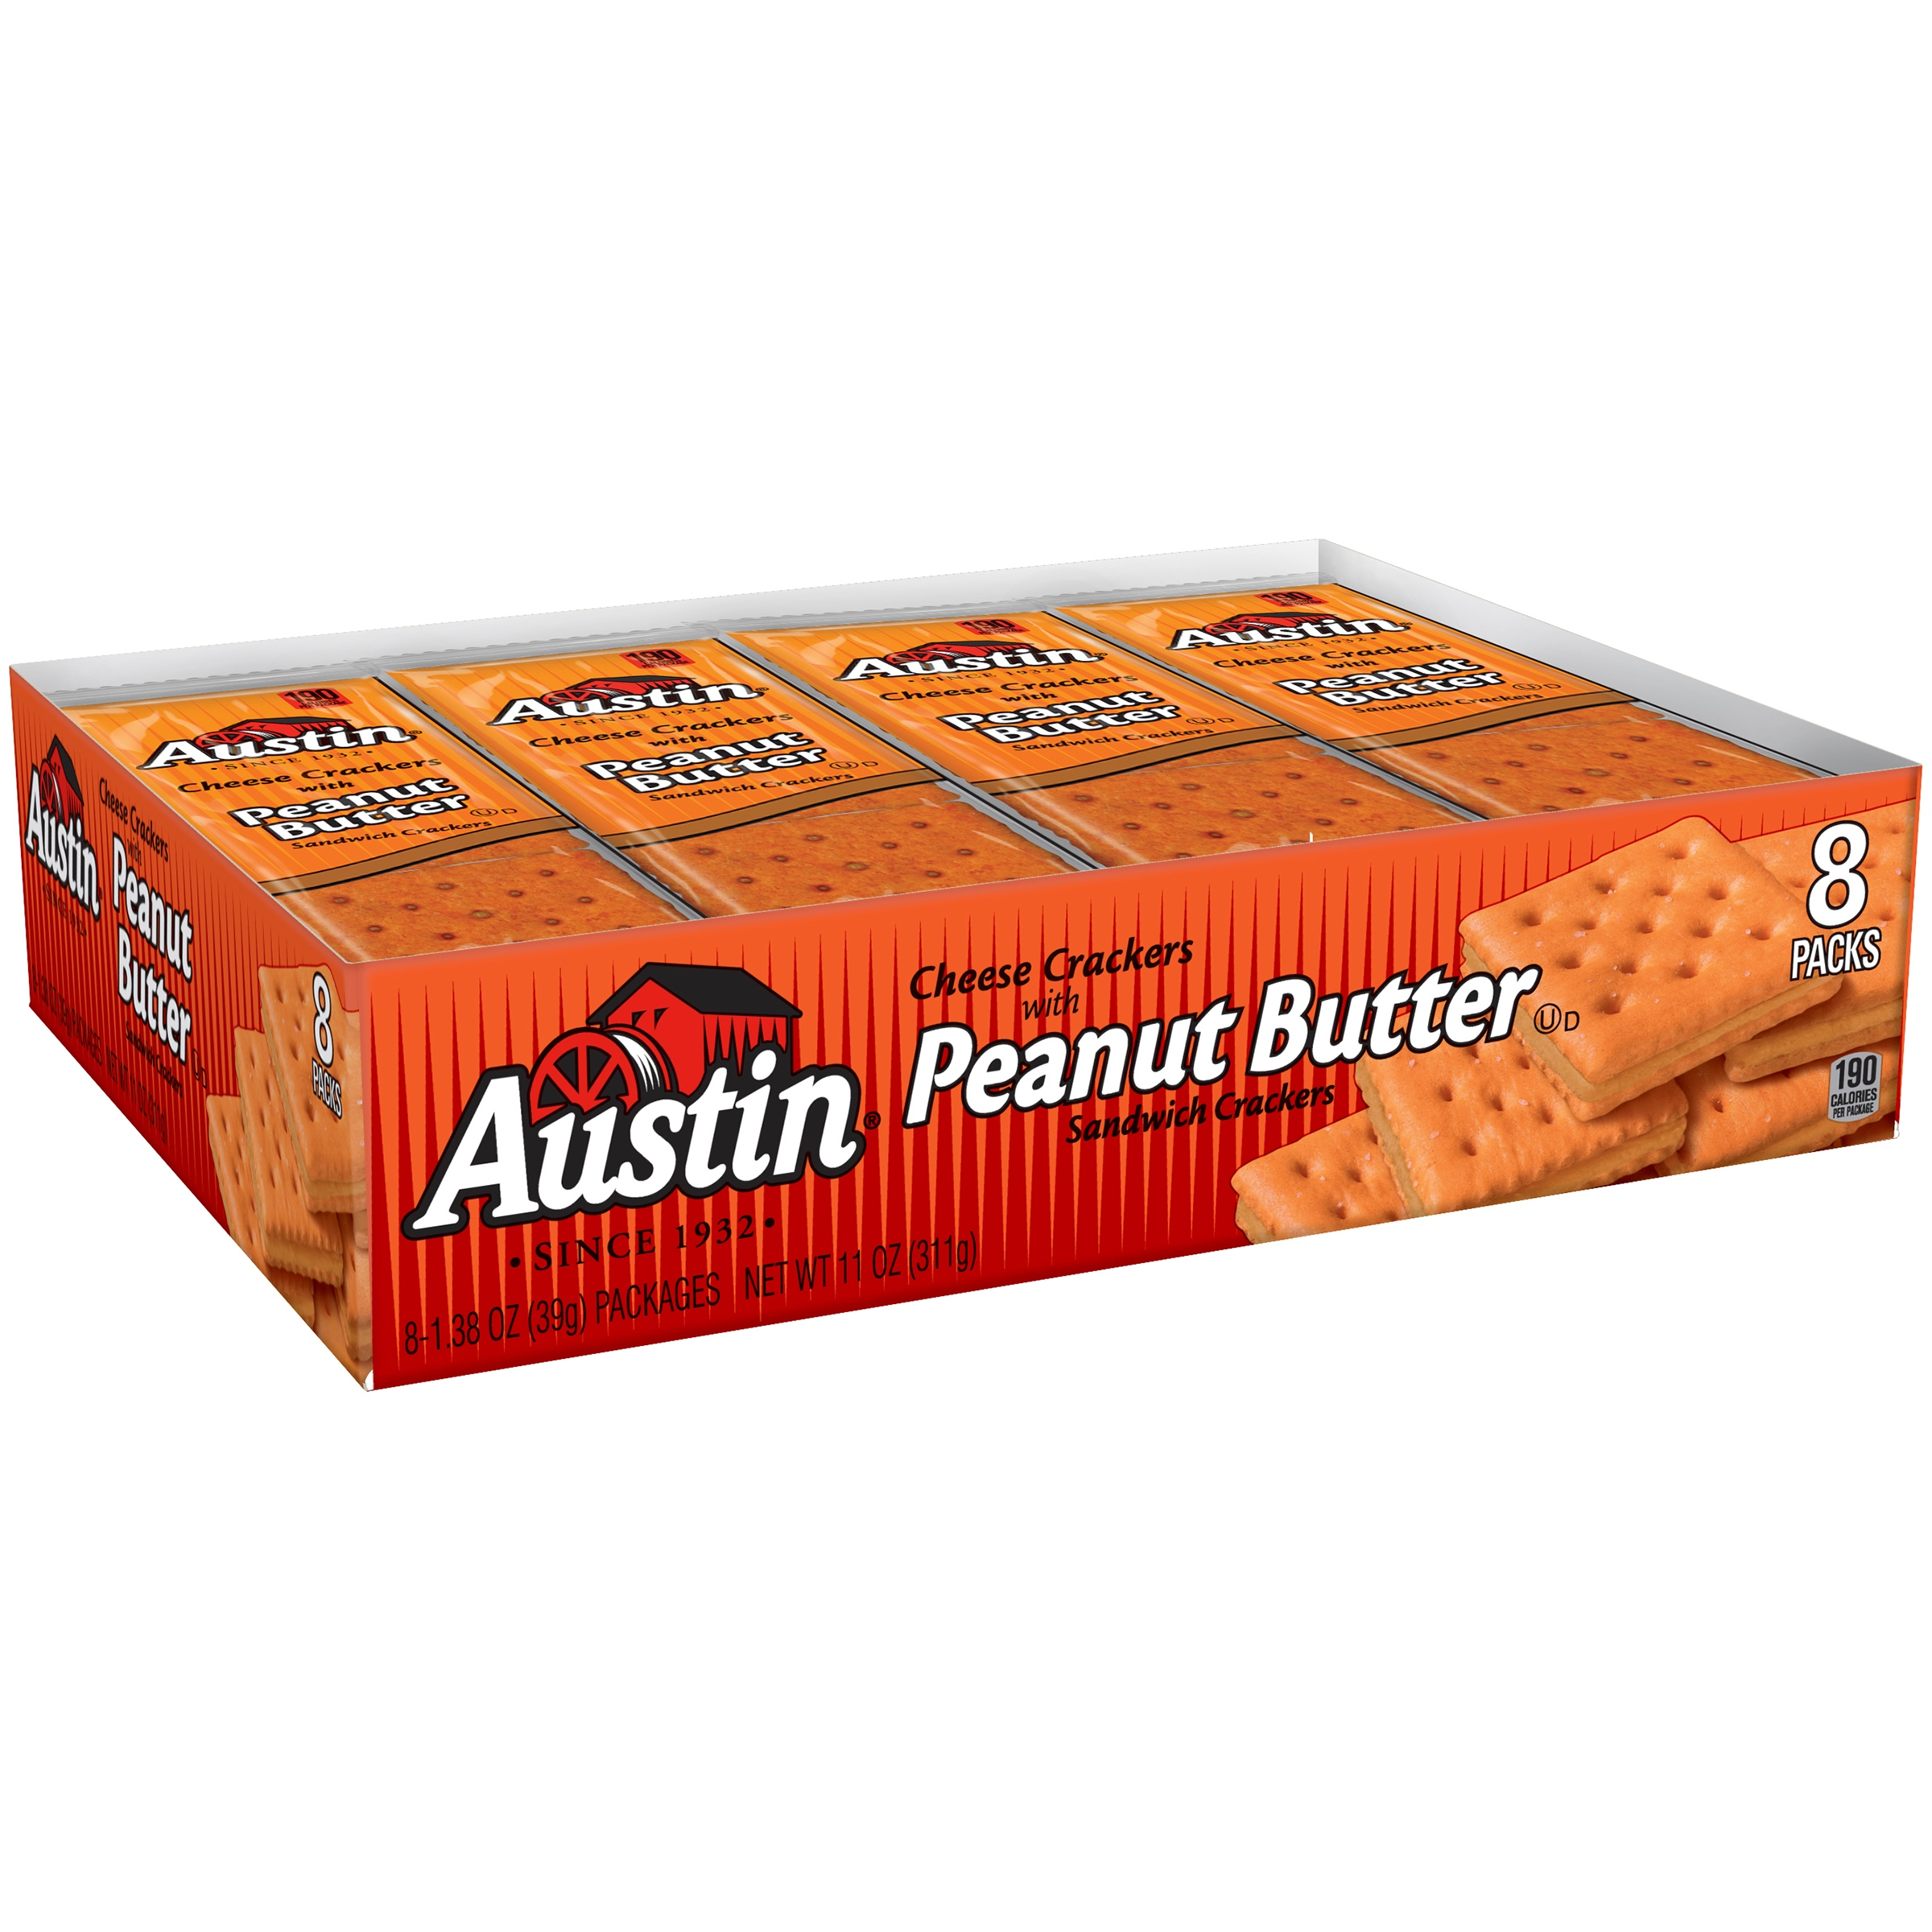 Austin Cheese Snack Crackers with Peanut Butter 8-1.38 oz. Packages